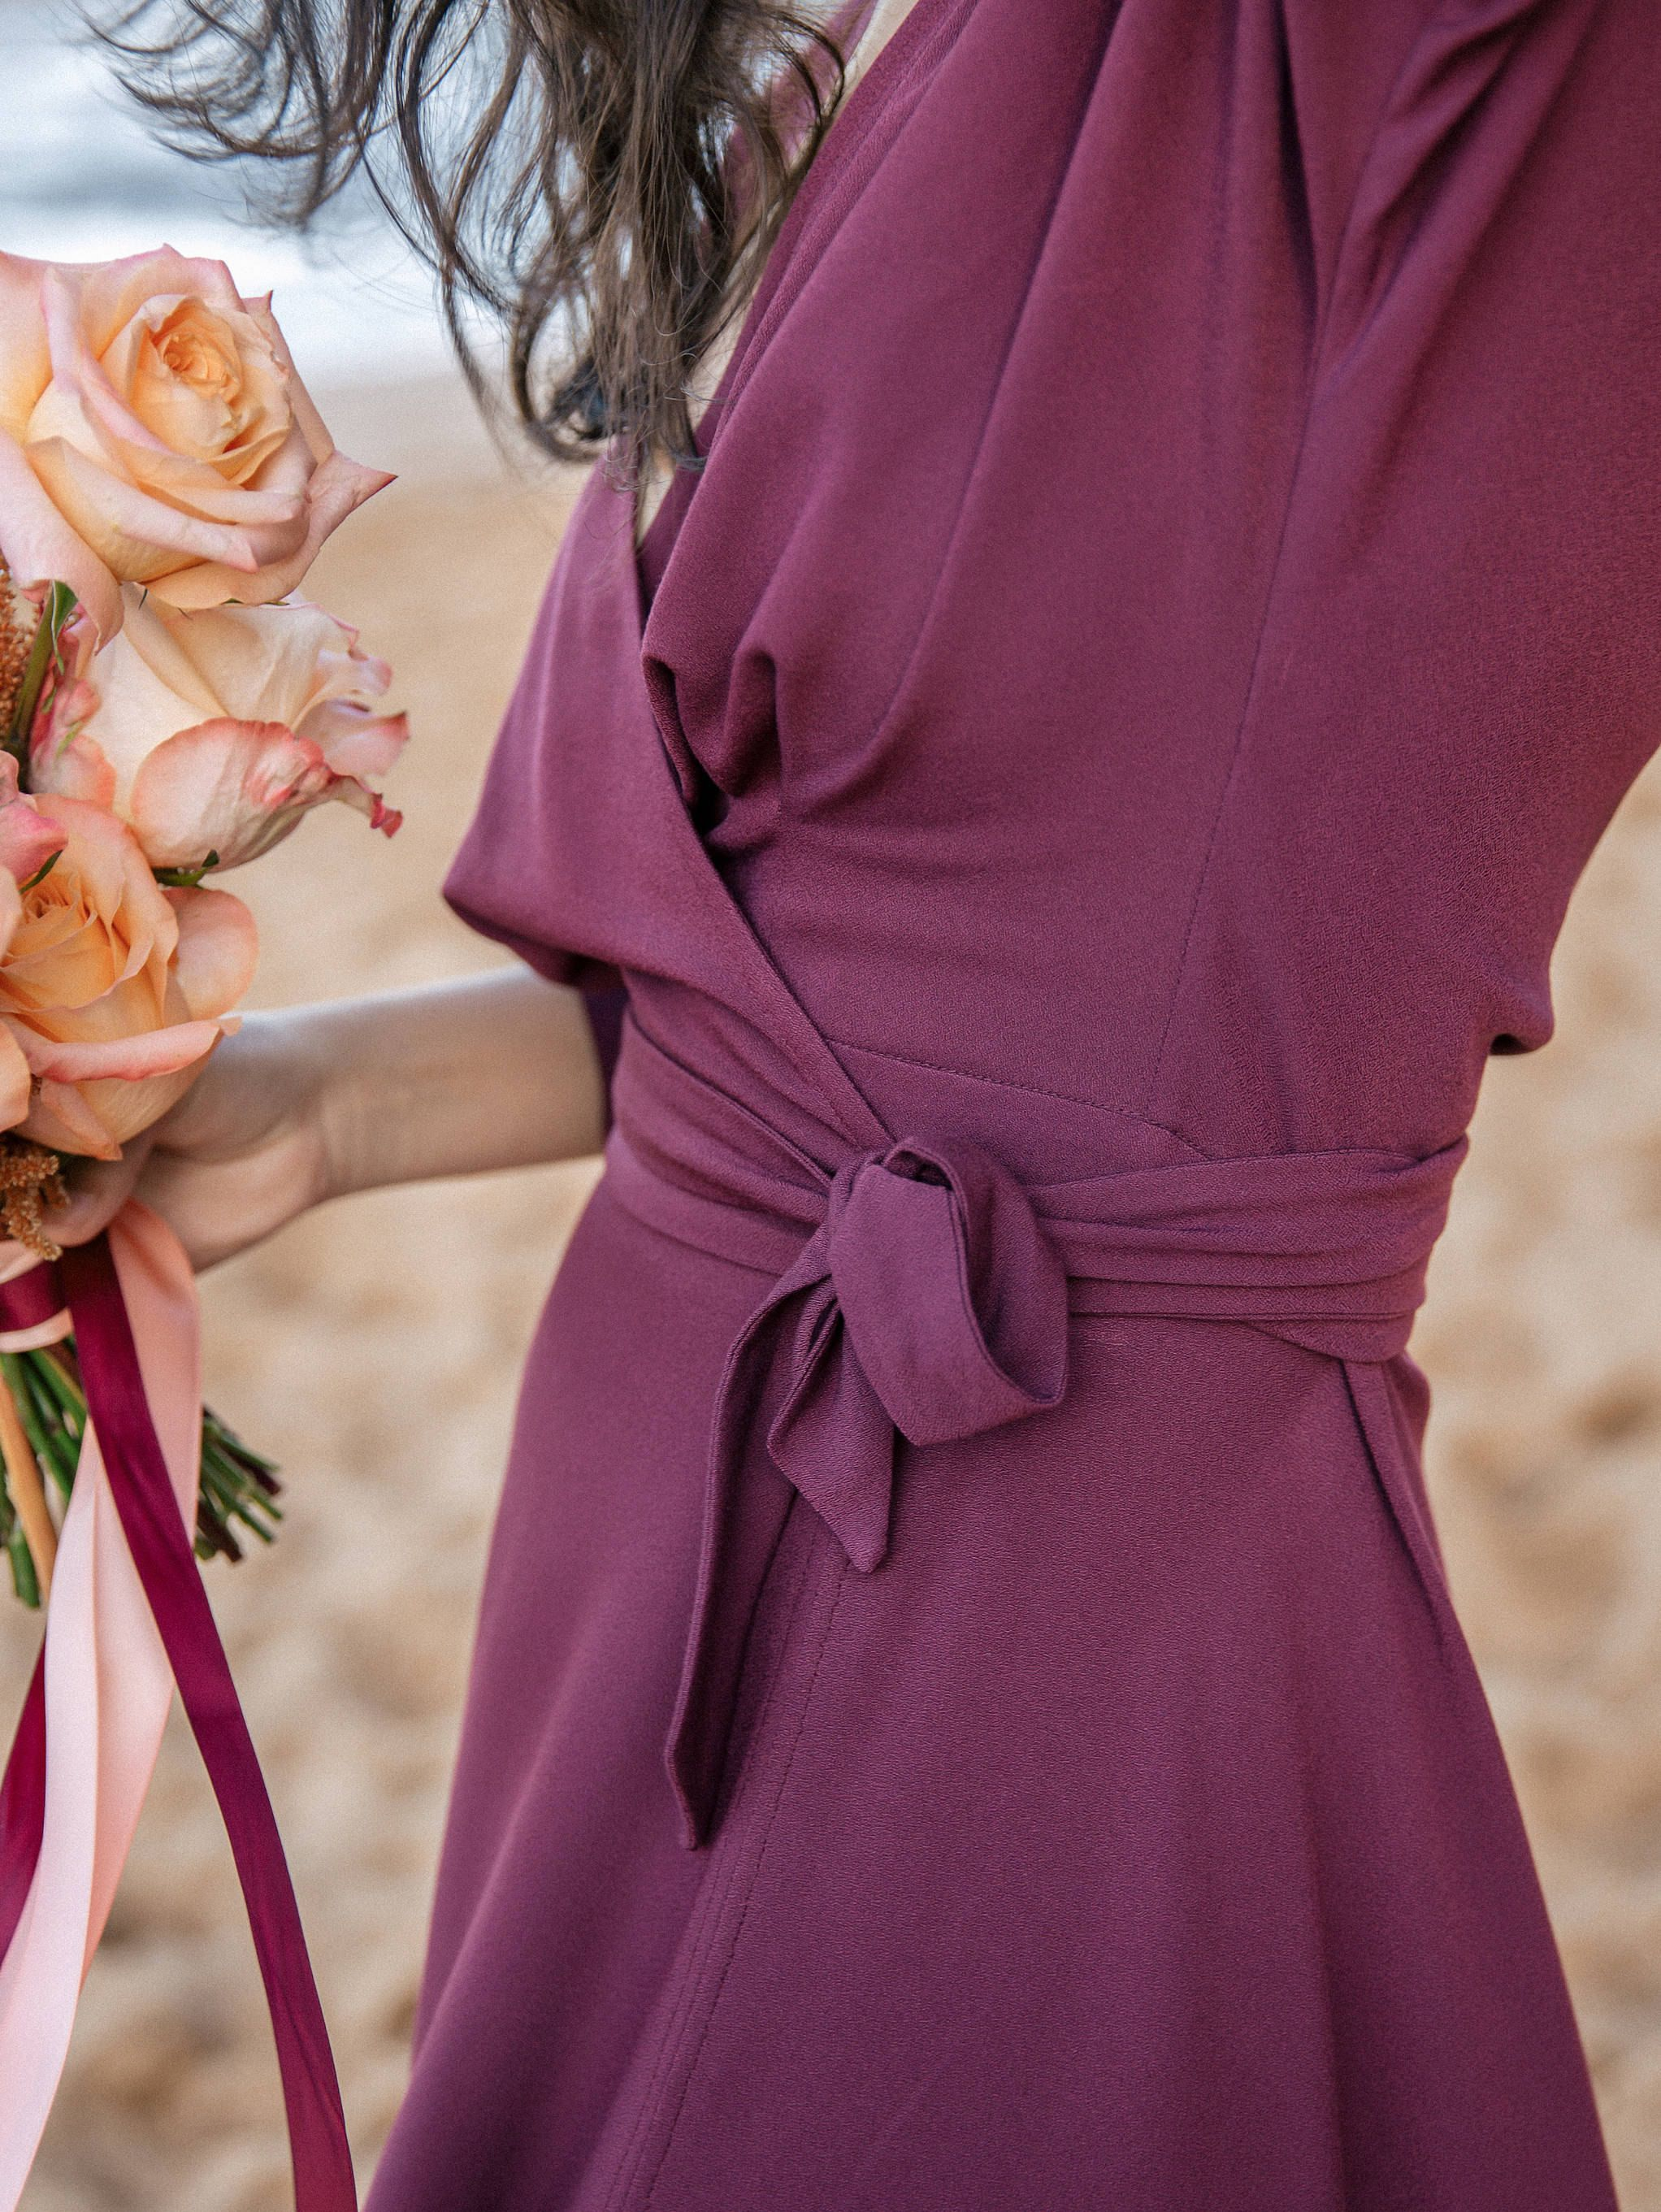 Kimono wrap dress for bridesmaids romantic maxi dress in a burgundy kimono wrap dress for bridesmaids romantic maxi dress in a burgundy plum perfect for a rustic style wedding also available in plus sizes ombrellifo Gallery